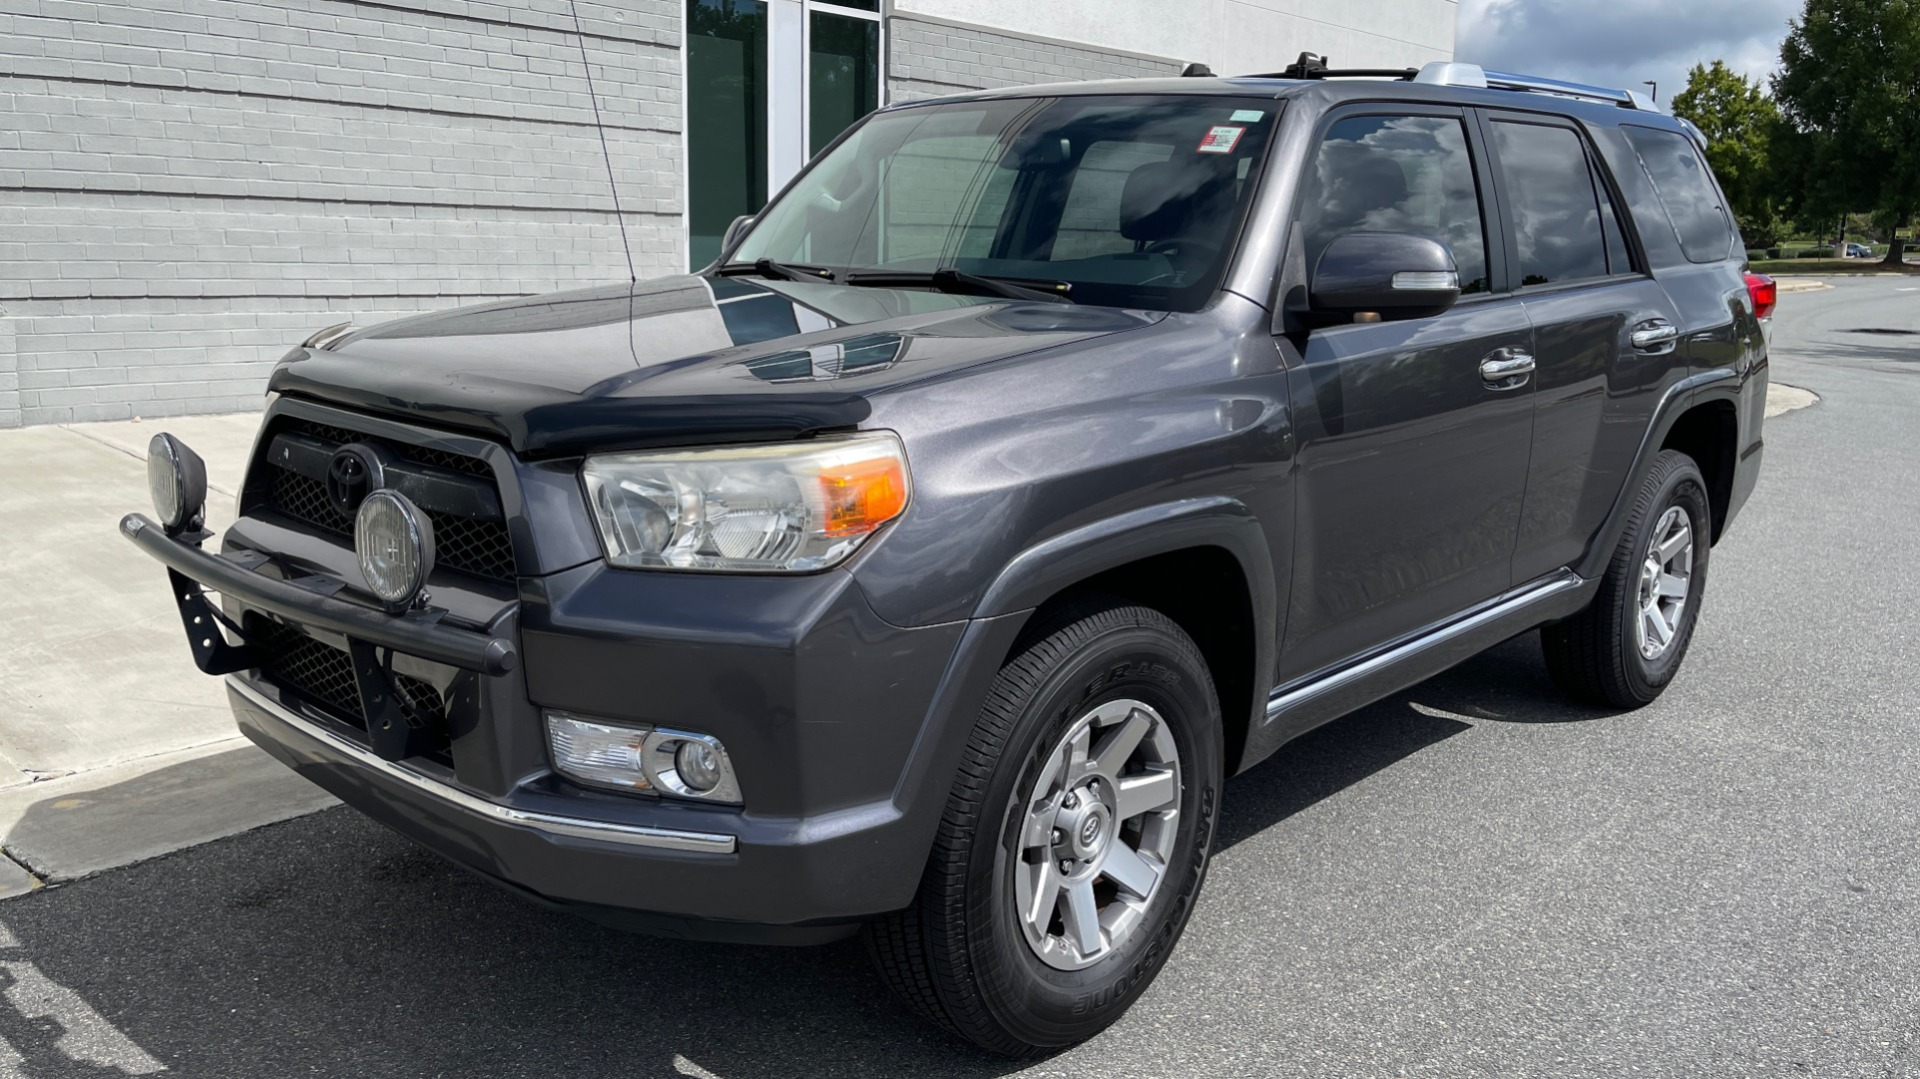 Used 2011 Toyota 4RUNNER SR5 4X4 V6 / 5-SPD AUTO / SUNROOF / POWER FRONT SEATS for sale $19,999 at Formula Imports in Charlotte NC 28227 2